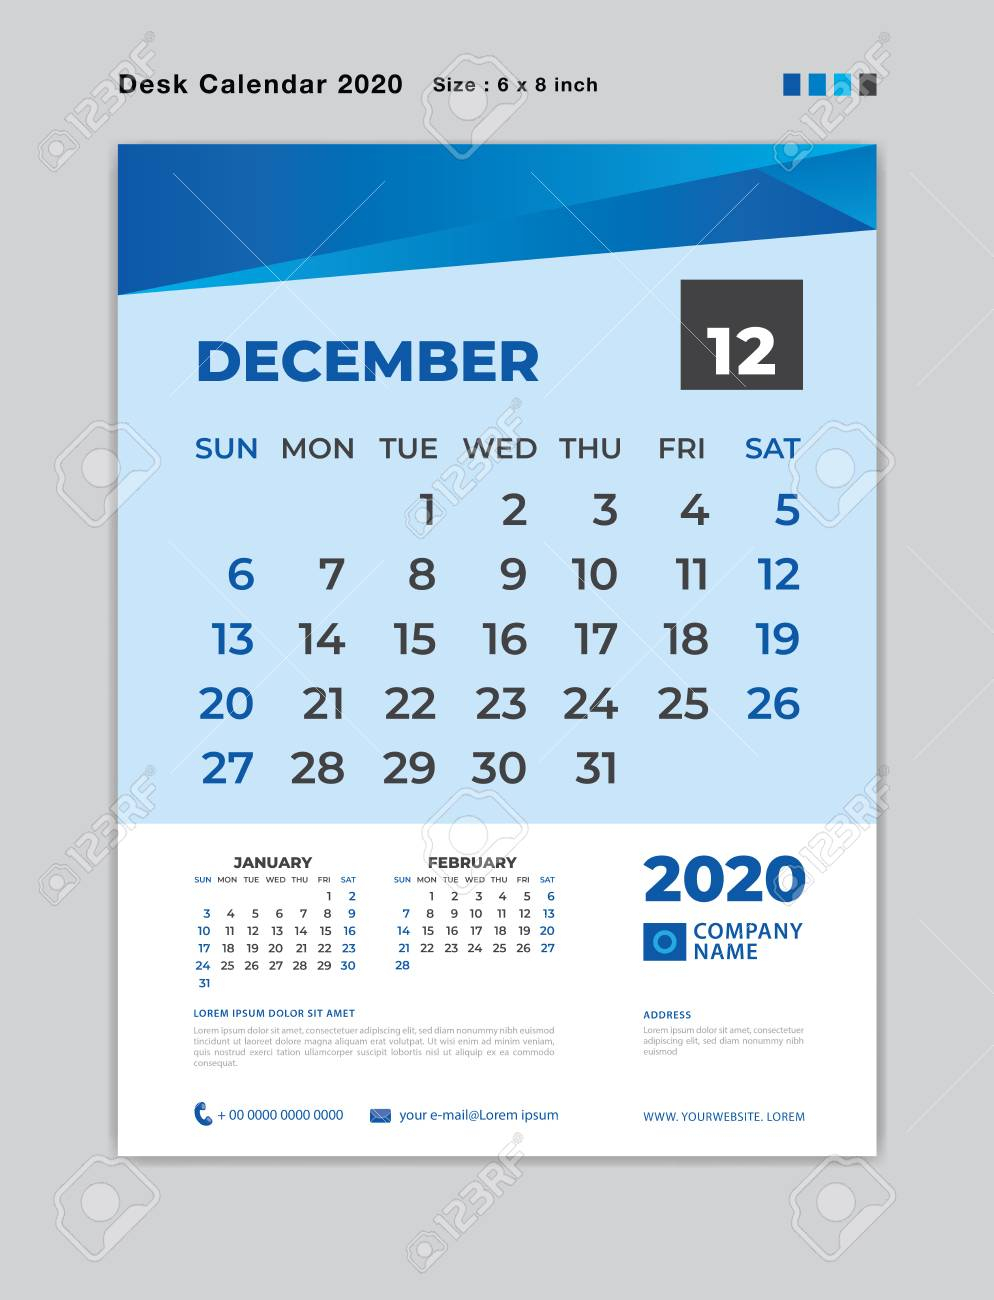 December 2020 Month Template, Desk Calendar For 2020 Year, Week..